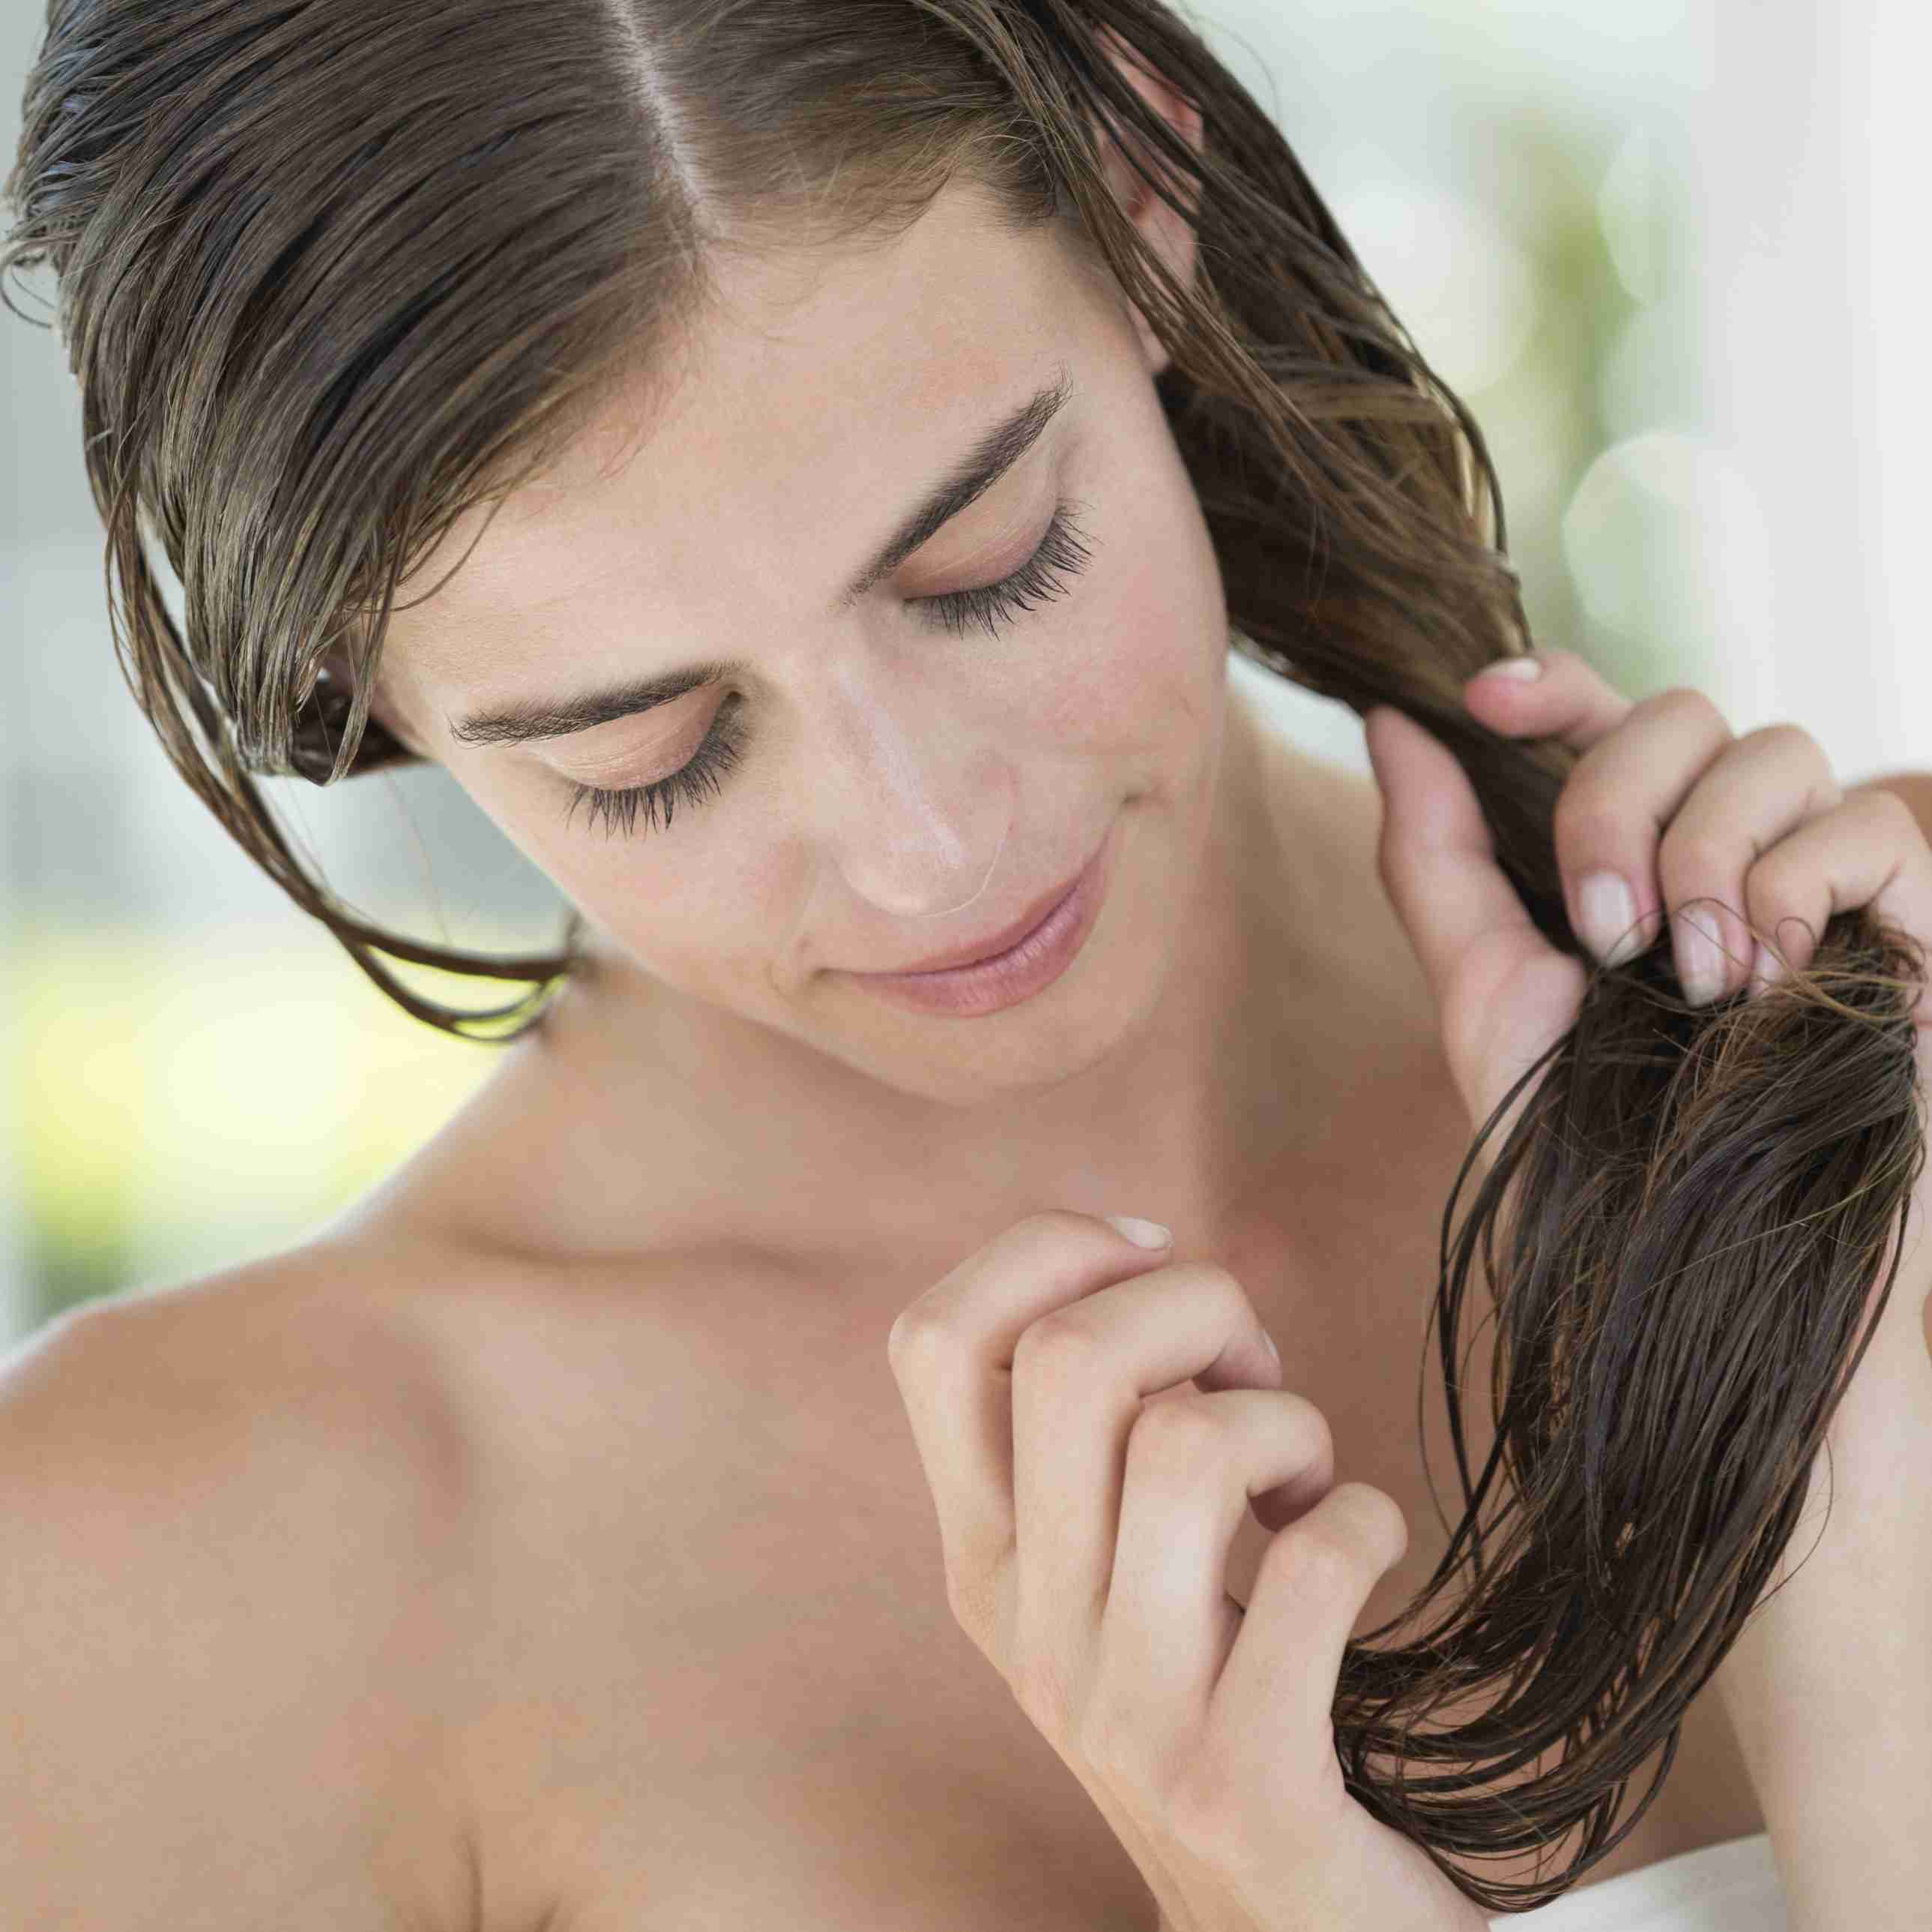 50 Flat Hair Fixes to Give Fine Hair More Body